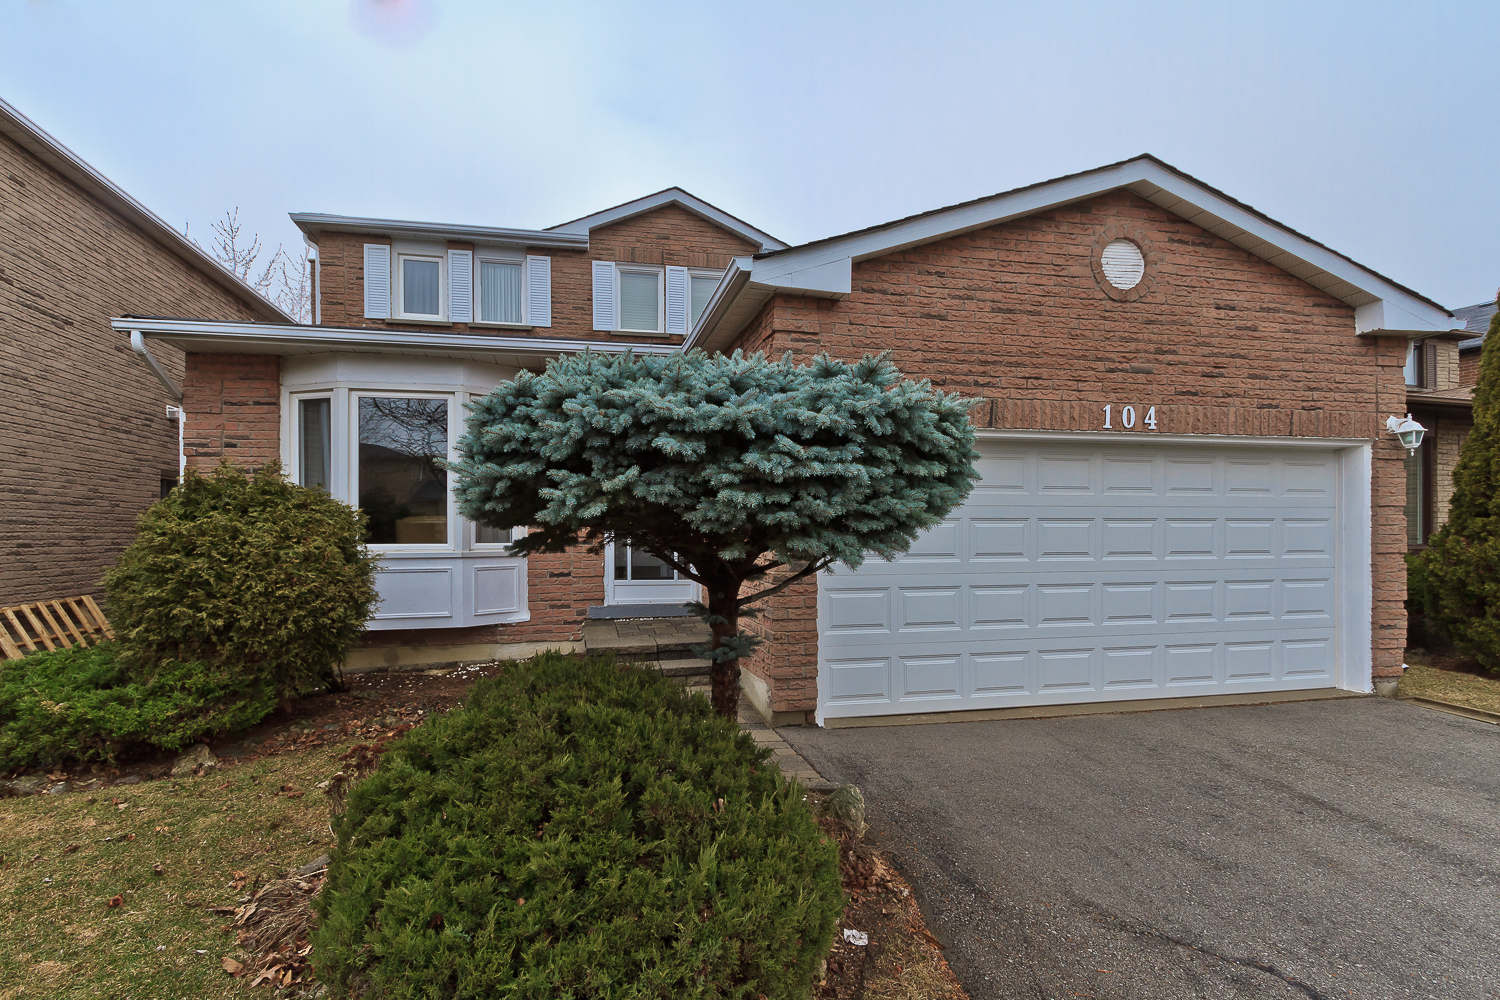 4 Bedroom Family Home For Sale! Popular Area Of Vaughan!